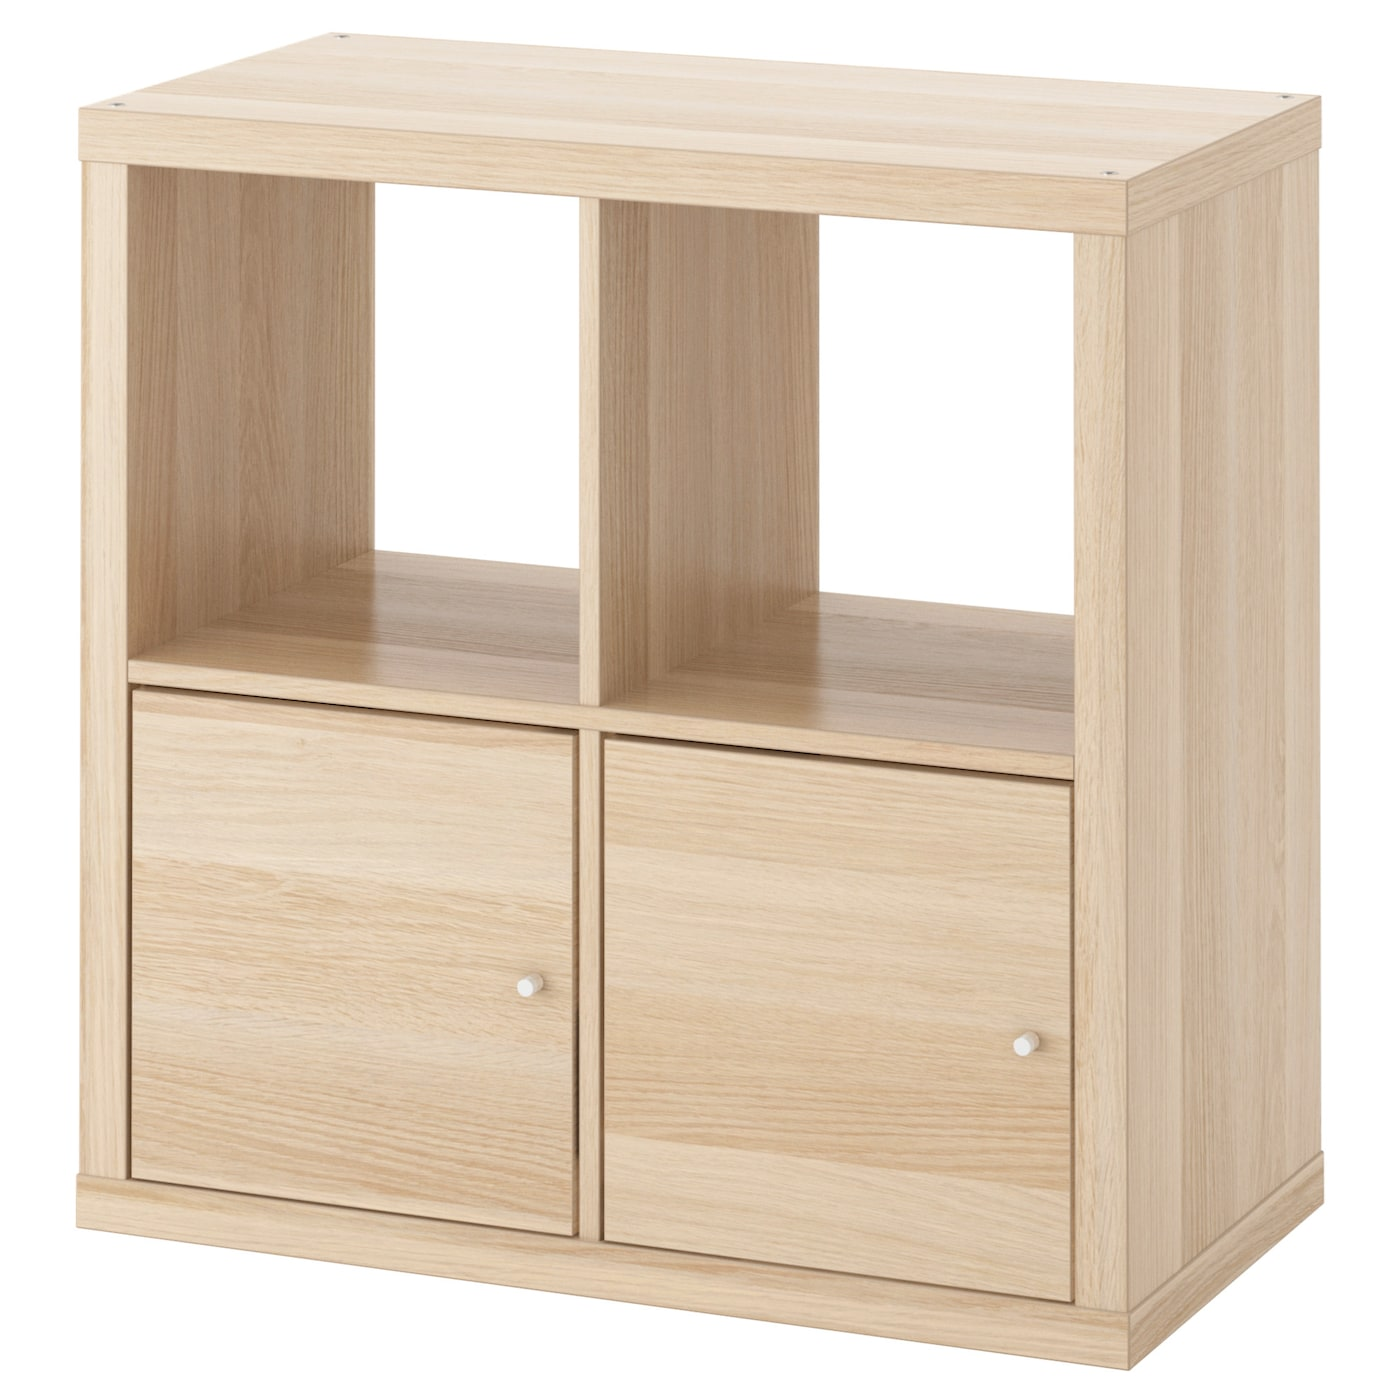 shelving unit with doors kallax ikea 26051